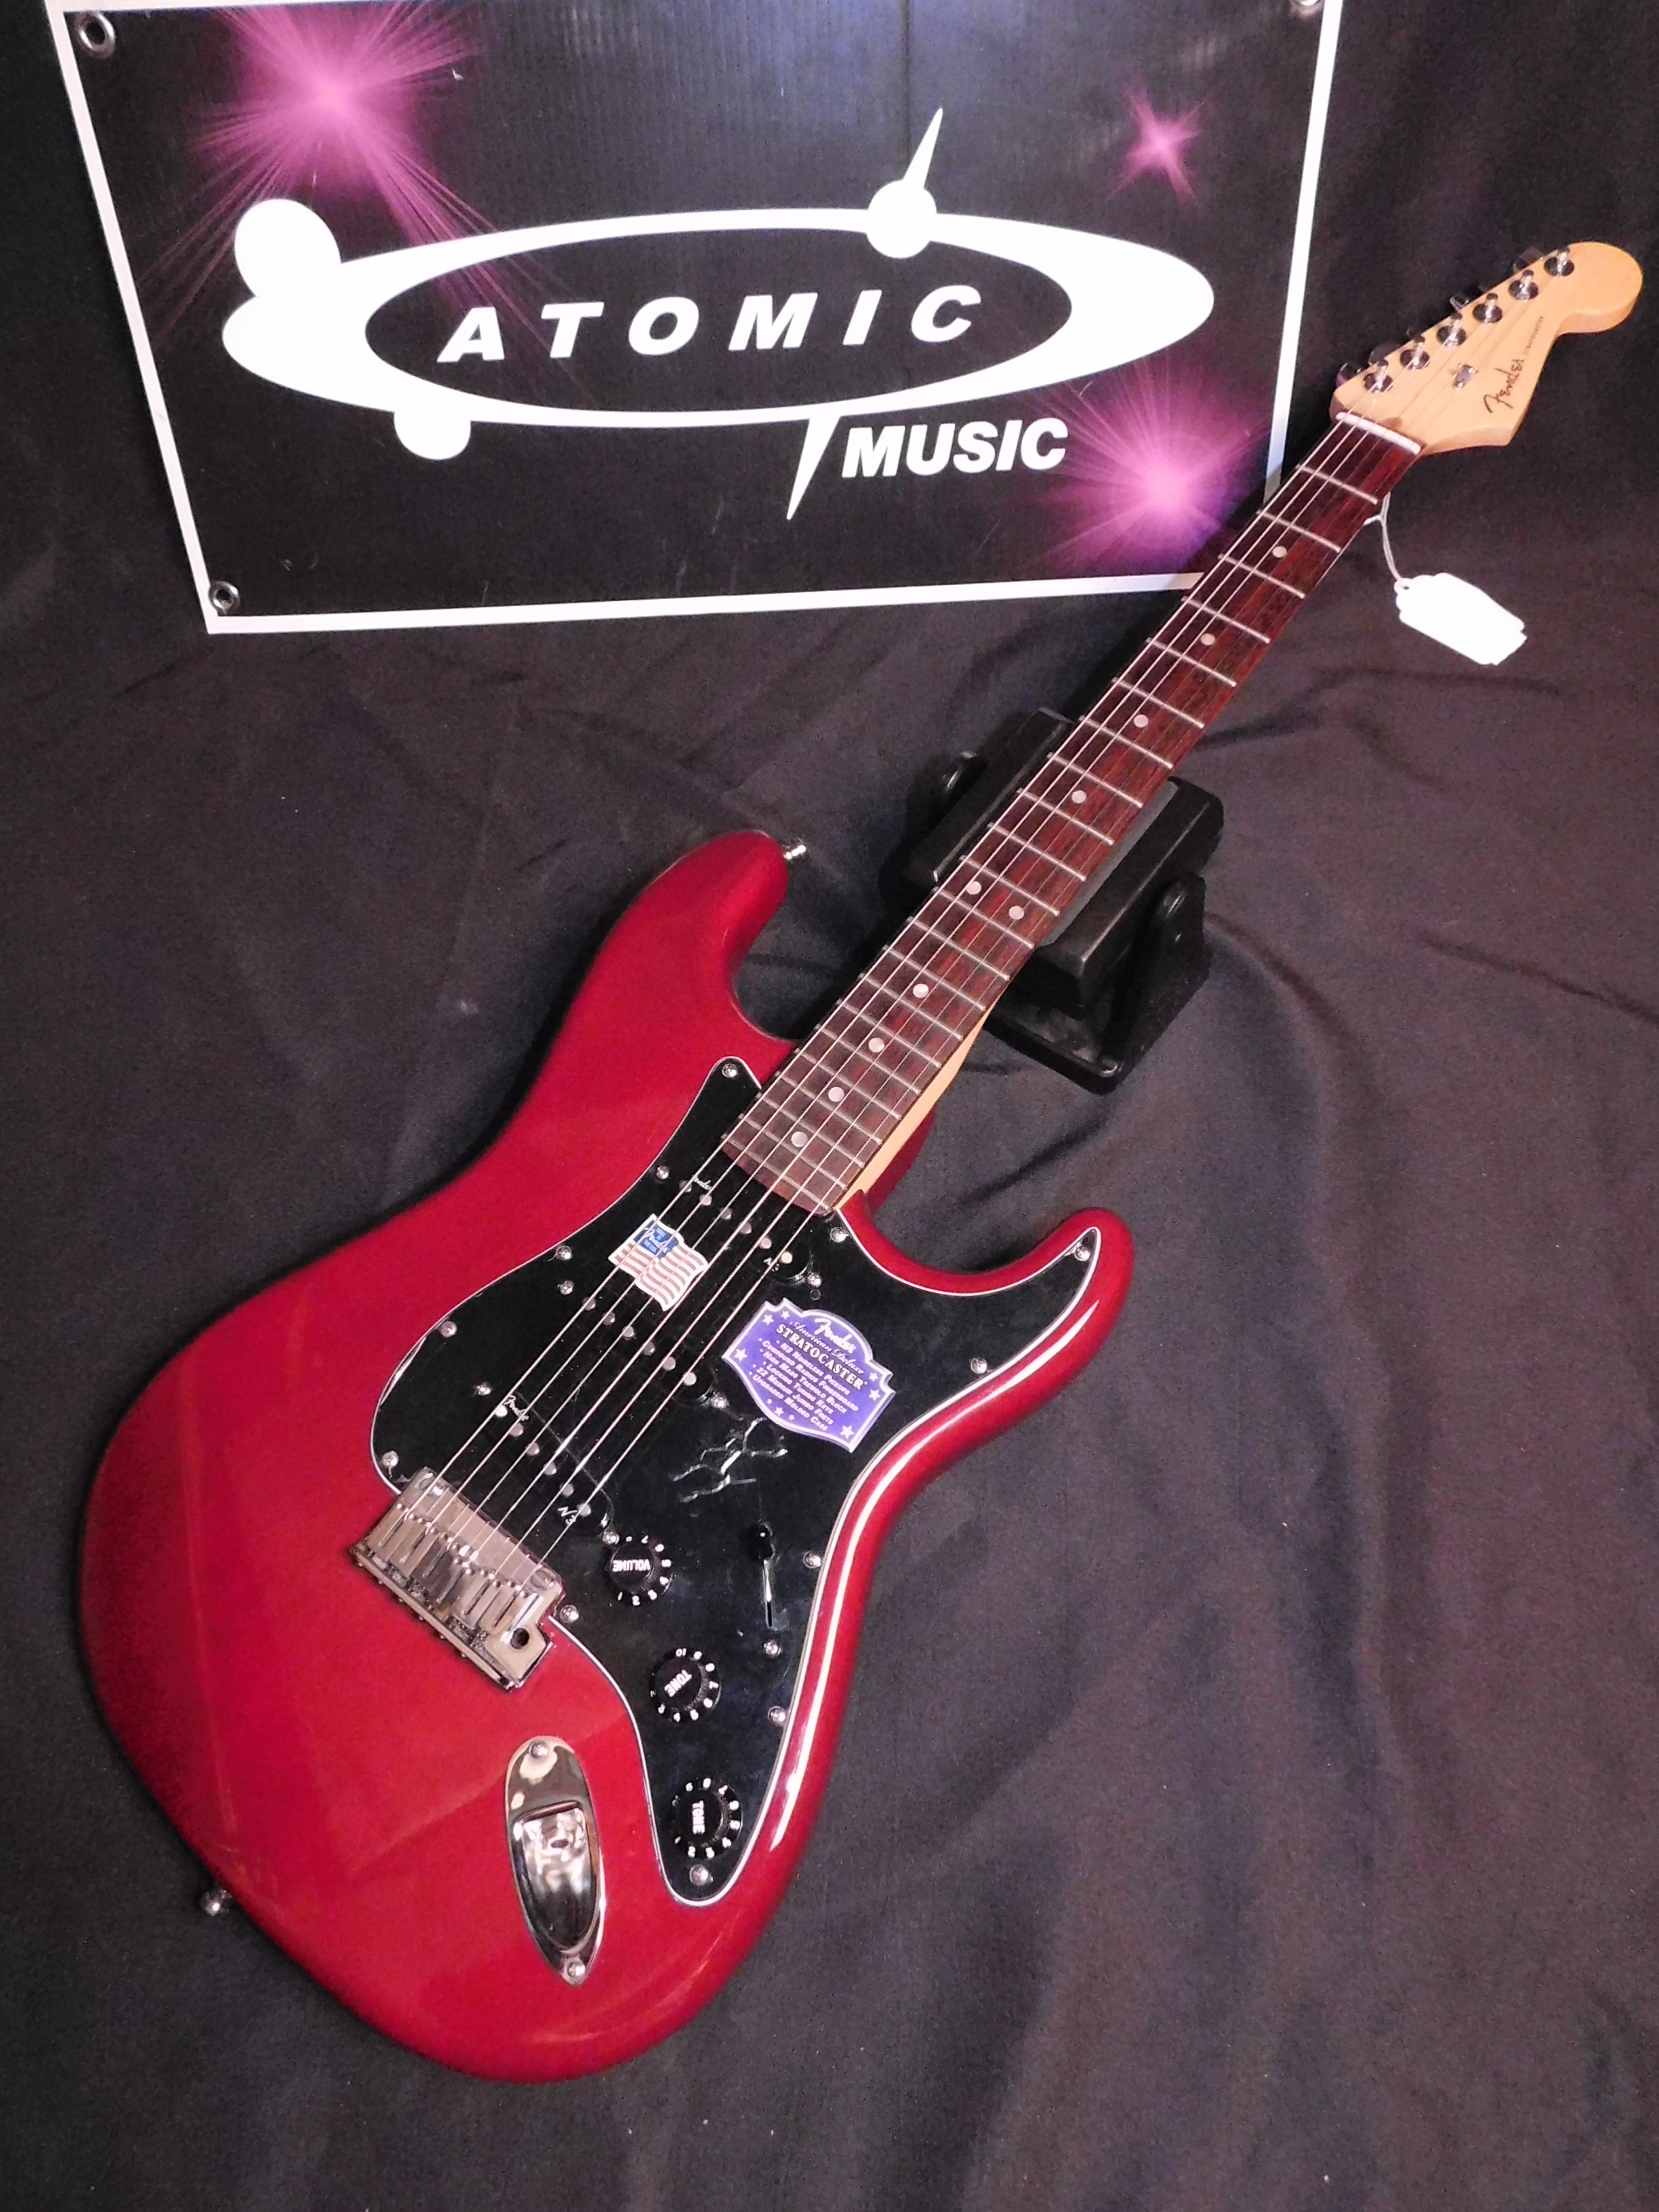 2011 AMERICAN FENDER DELUXE STRAT - RED - USA MADE DLX STRATOCASTER